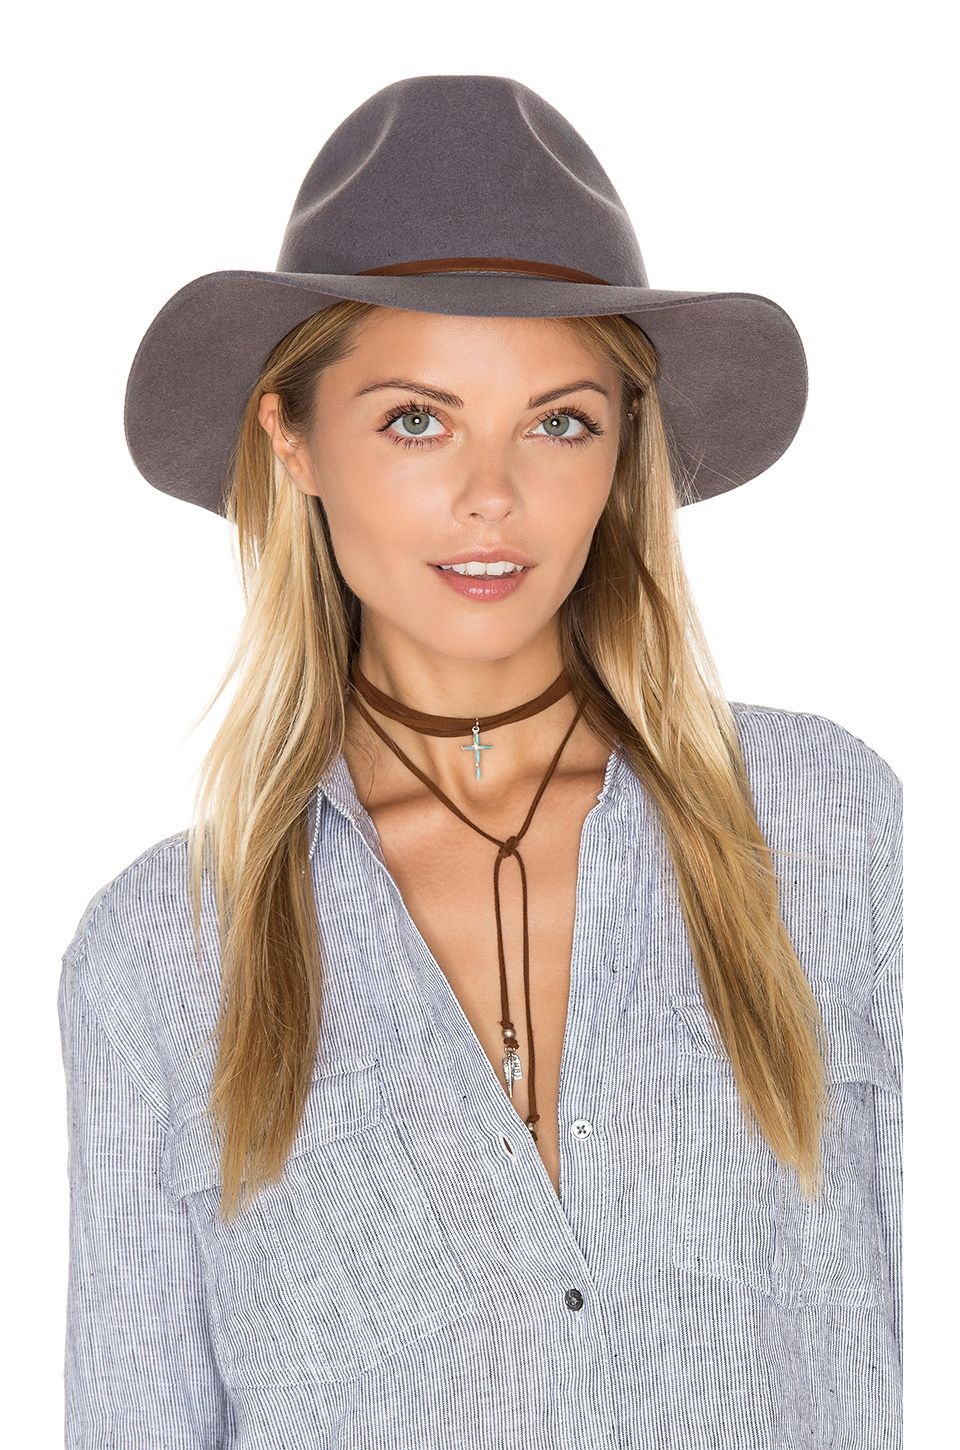 Brixton Wesley Fedora in Light Grey at Revolve size small  cd733174f1e7